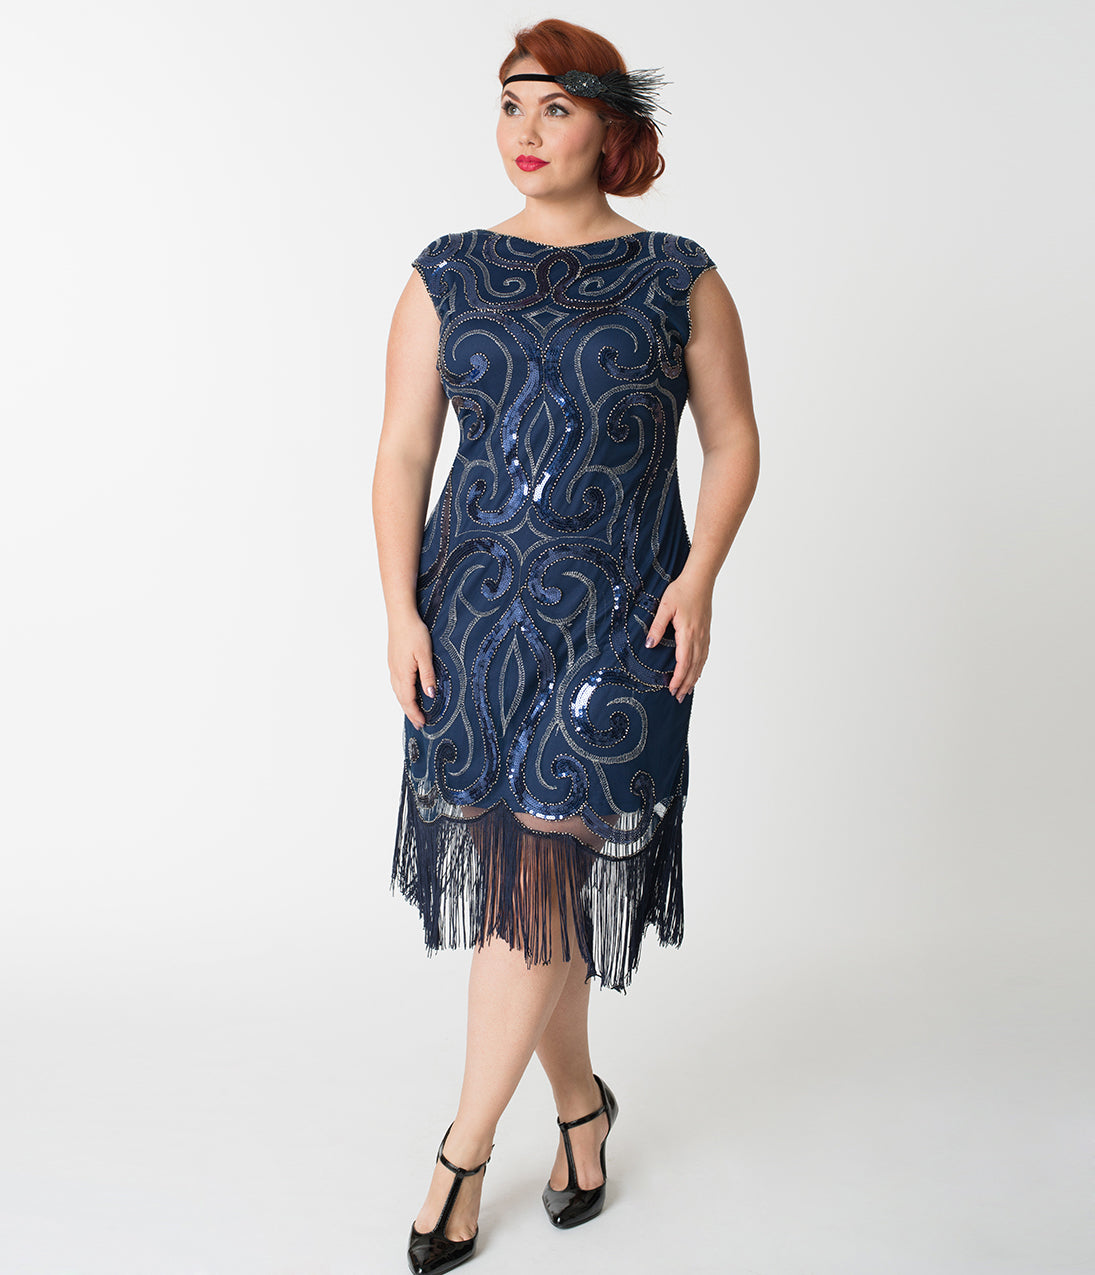 1920s Style Dresses, Flapper Dresses Plus Size Navy Blue Silver Swirl Iris Fringe Flapper Dress $98.00 AT vintagedancer.com